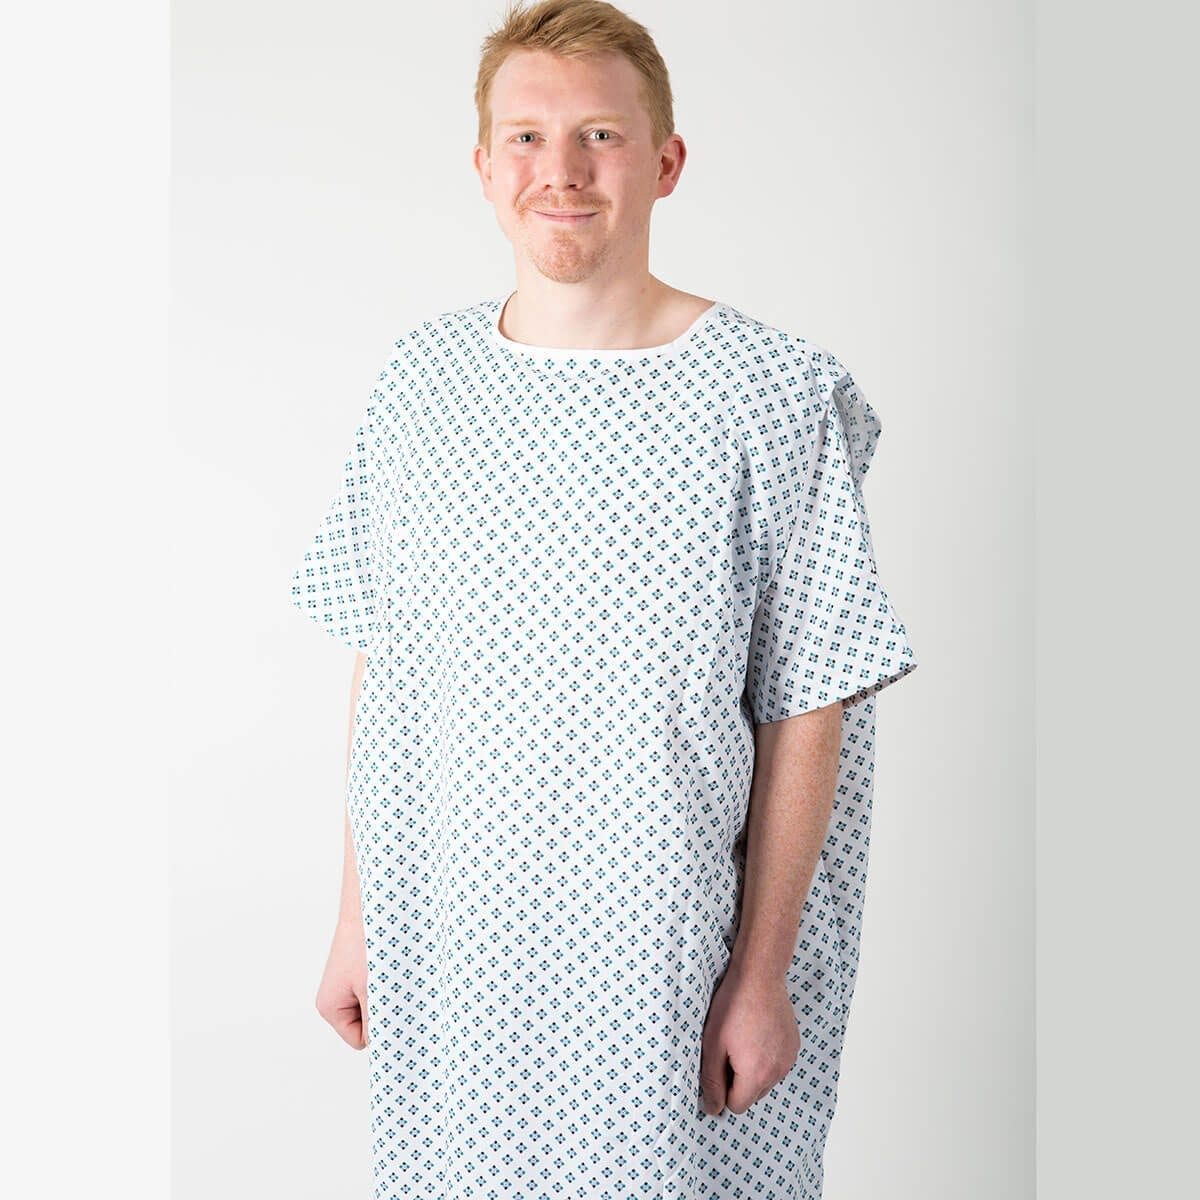 Uniquely designed hospital gown with no ties